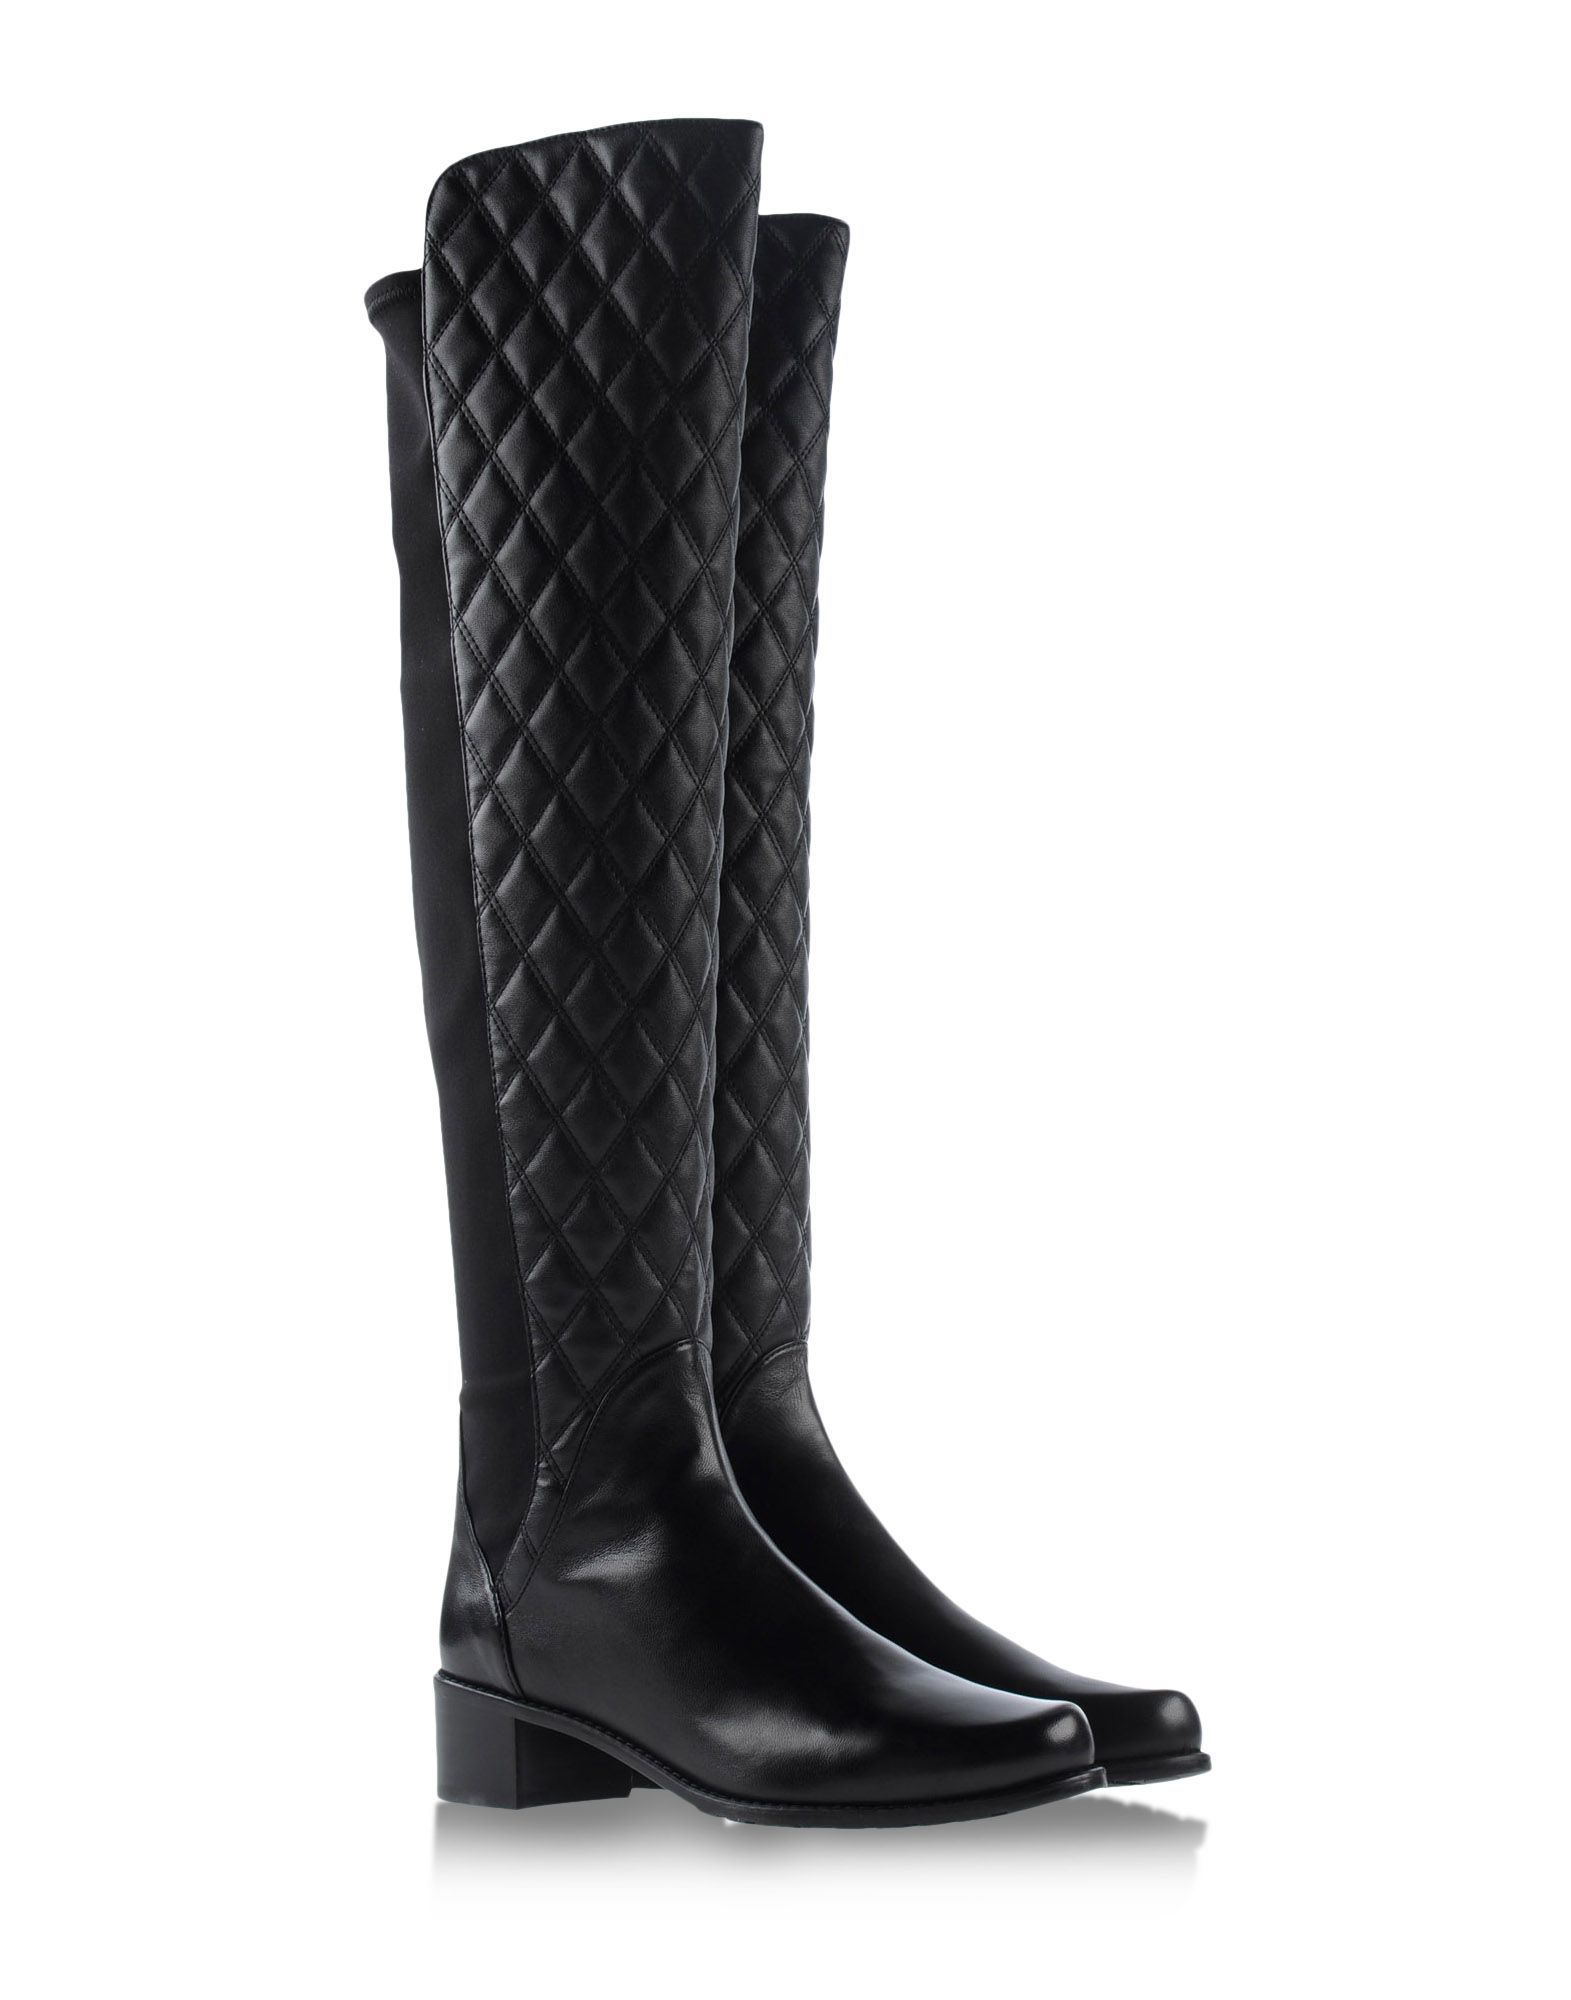 615aca76238e Stuart Weitzman s iconic 5050 boots in quilted leather  Over The Knee Boots  Shop Trend Buy Shoes Trend